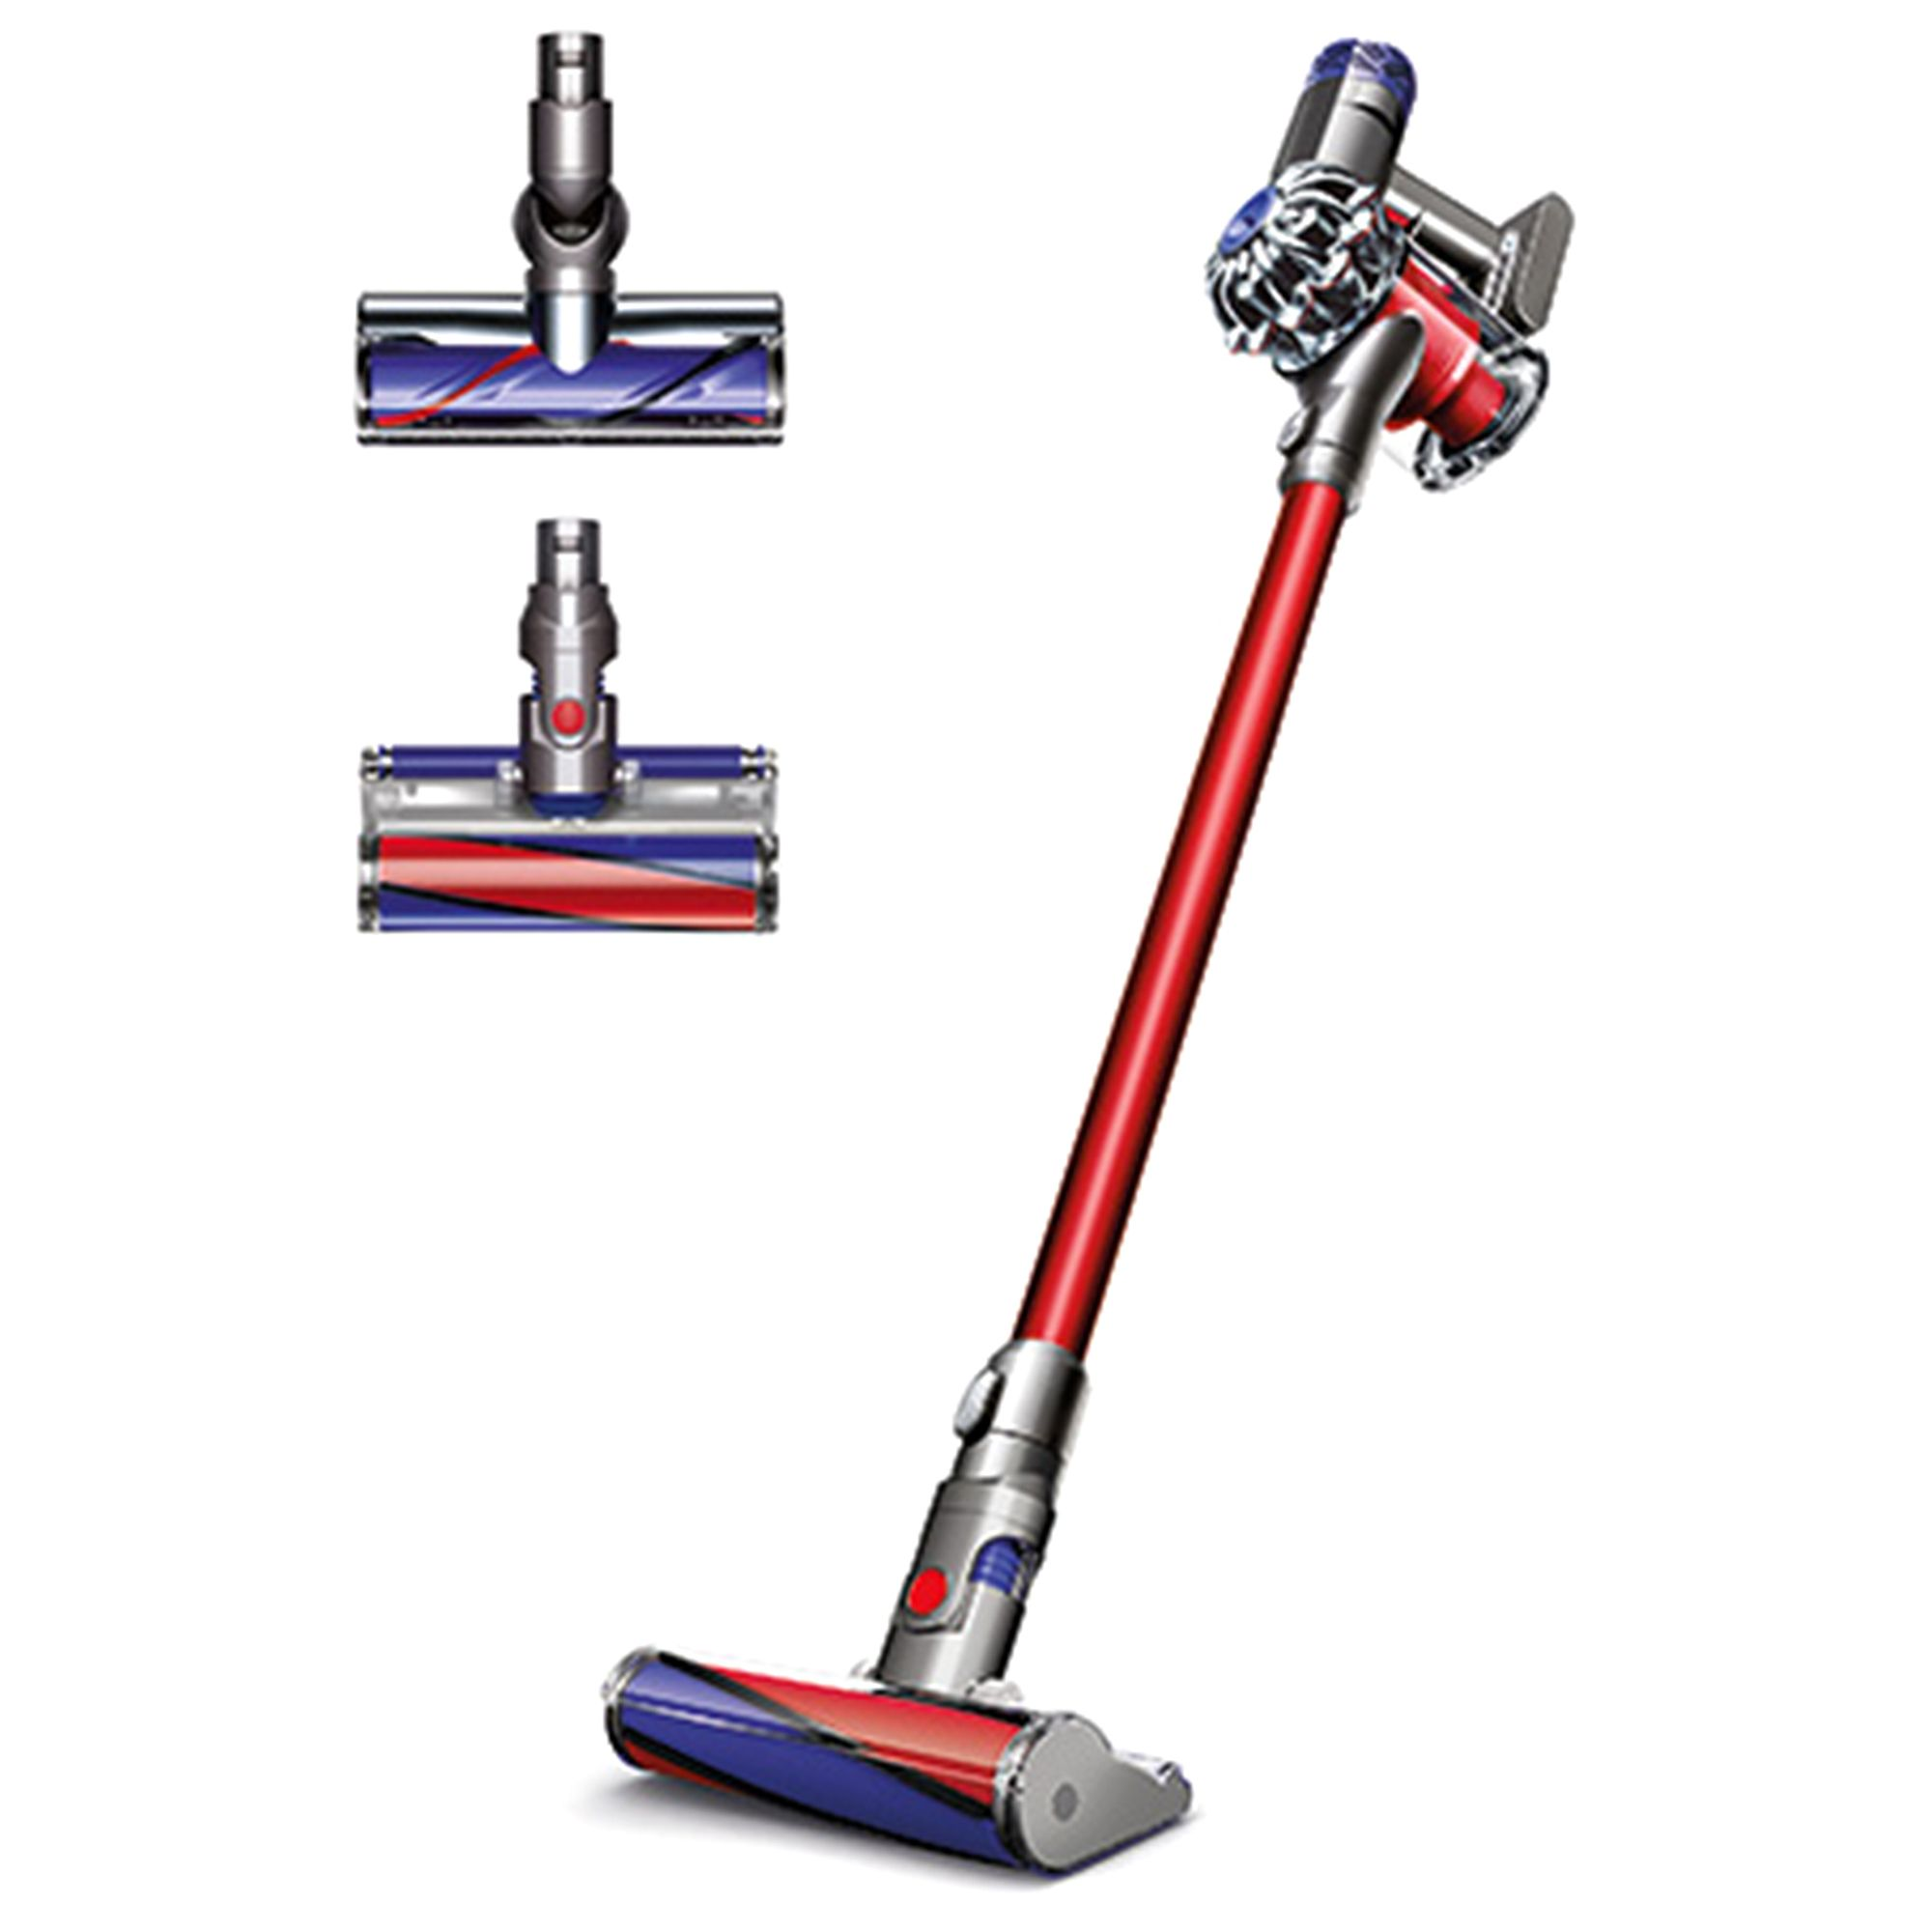 Dyson V6 Absolute Cordless Stick Vacuum